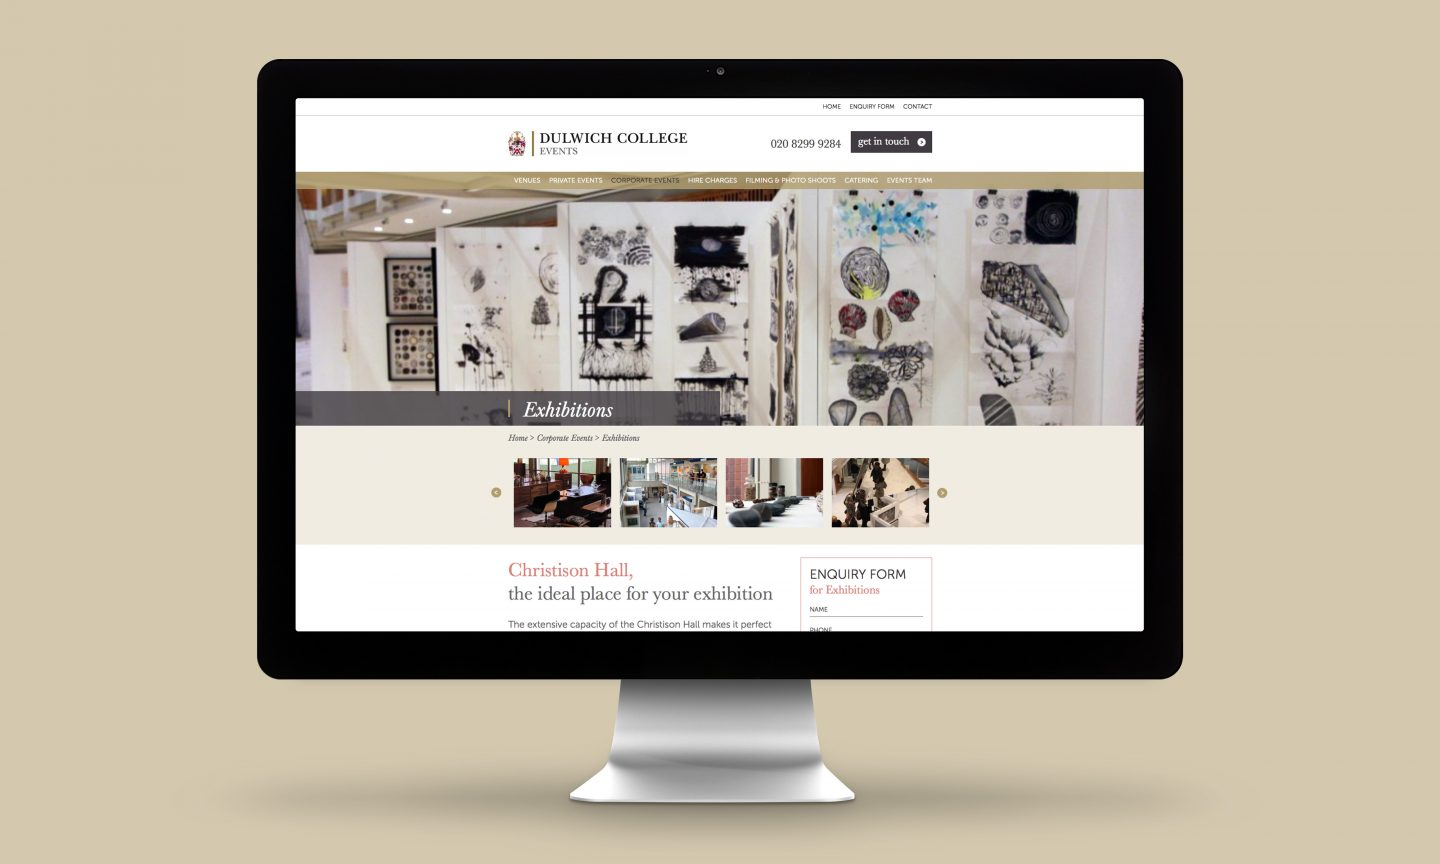 Dulwich College Events Website Design Exhibitions page